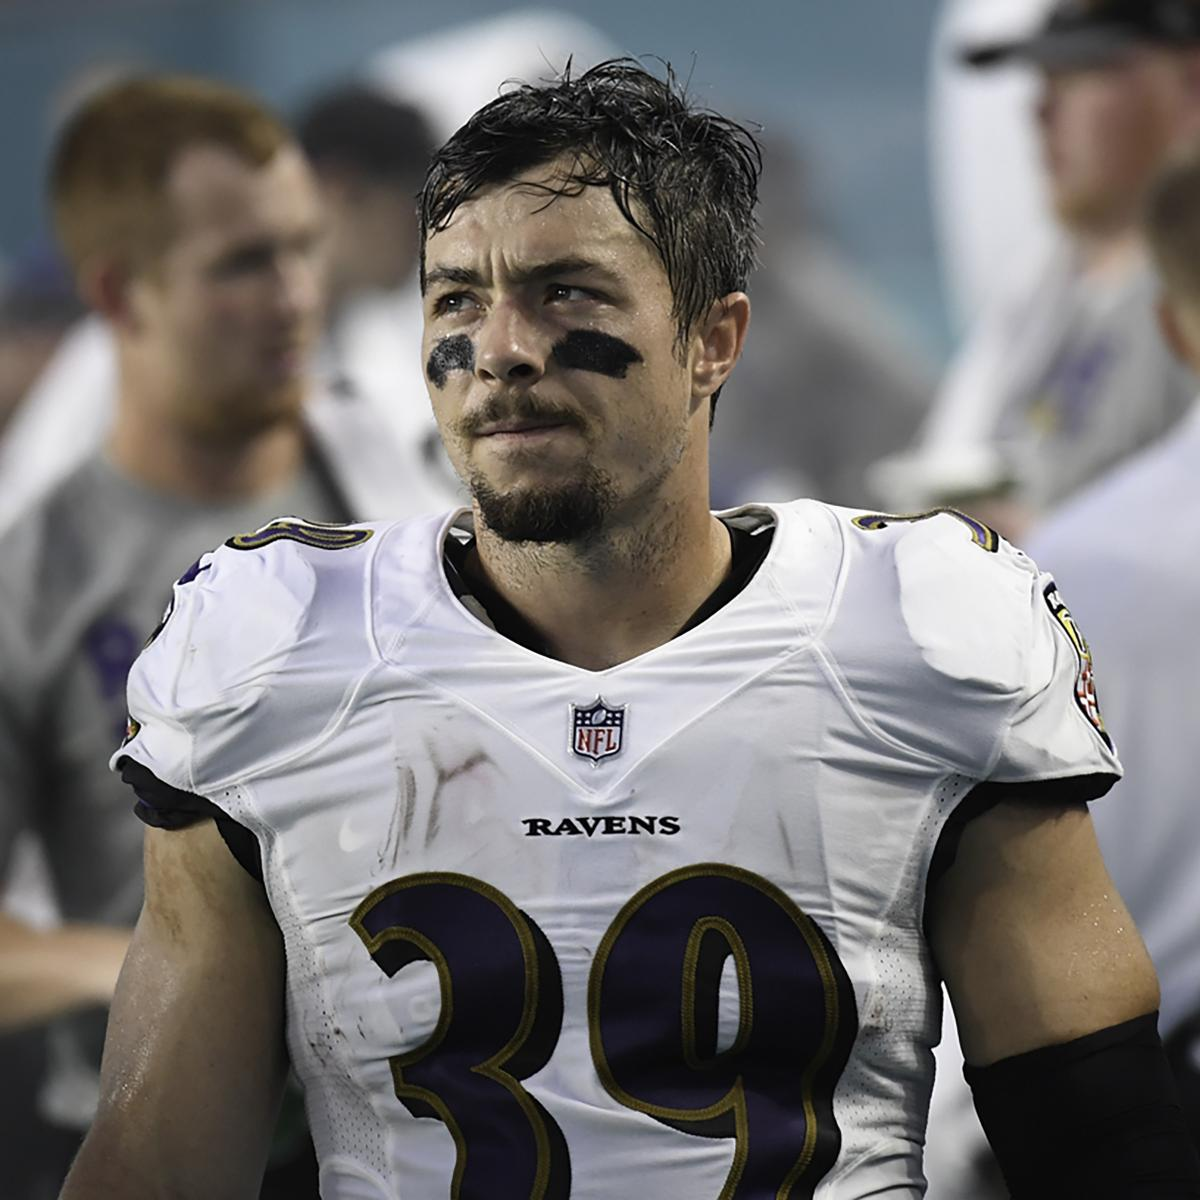 Danny Woodhead Reportedly Released by Ravens After 1 Season with Team